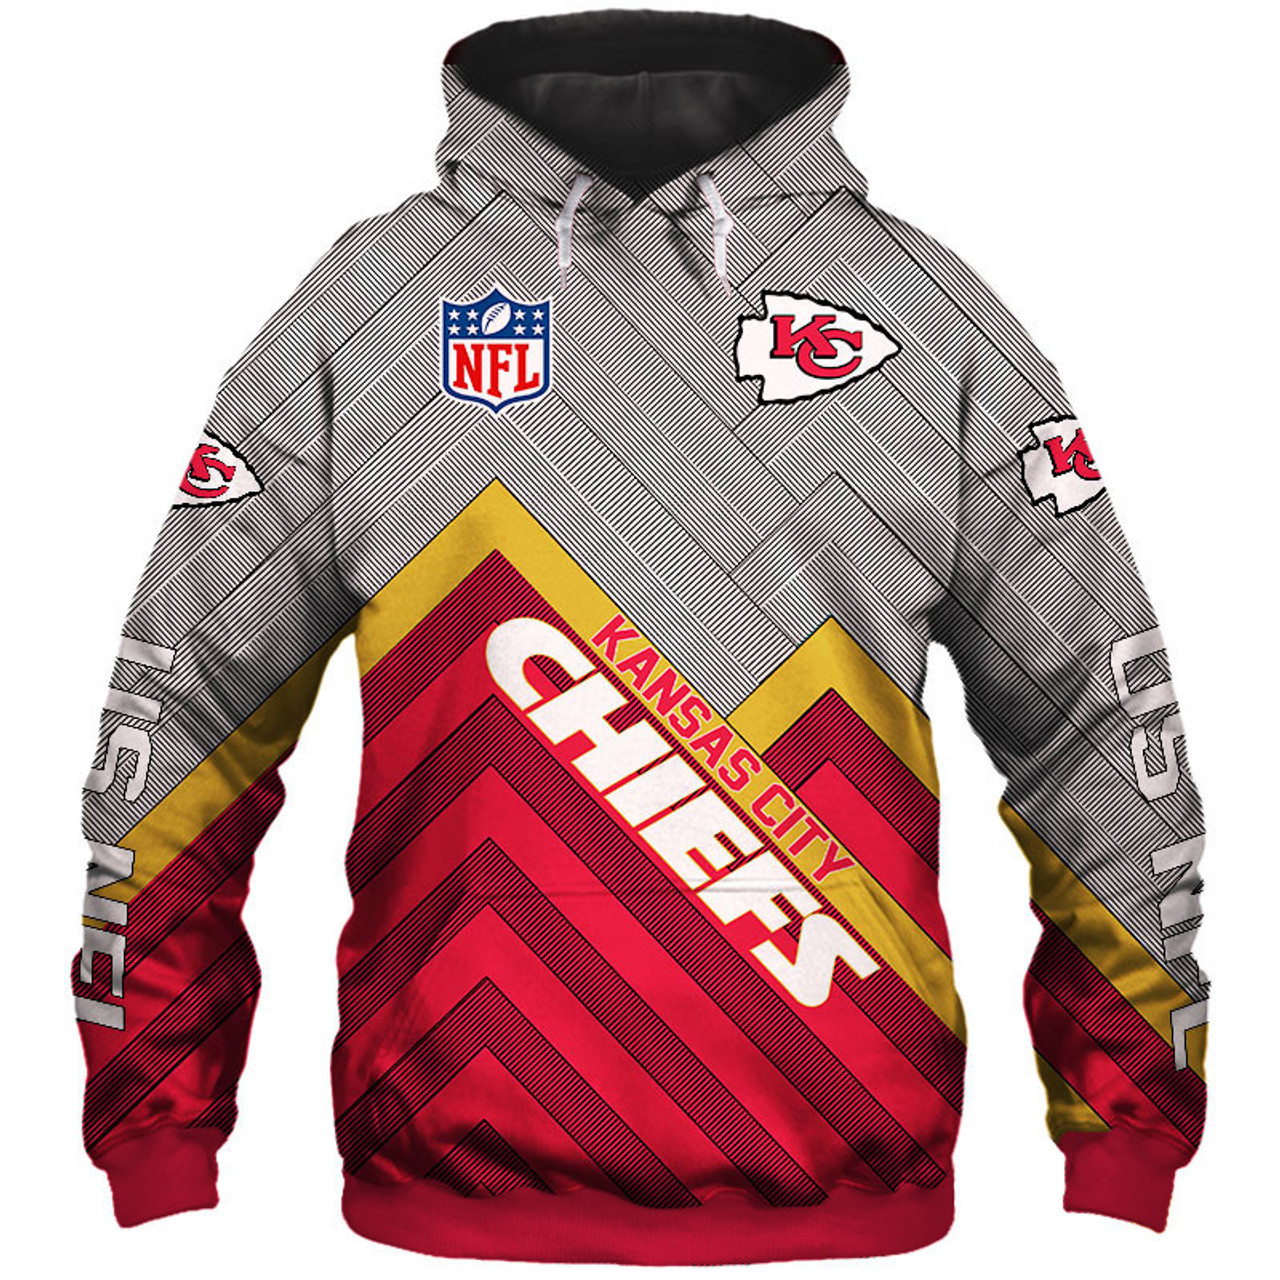 lowest price ded19 7884b **(NEW-OFFICIAL-N.F.L.KANSAS-CITY-CHIEFS-PULLOVER-HOODIES/3D-CUSTOM-CHIEFS-LOGOS  & OFFICIAL-CHIEFS-TEAM-COLORS/NICE-3D-DETAILED-GRAPHIC-PRINTED-DOUBLE...